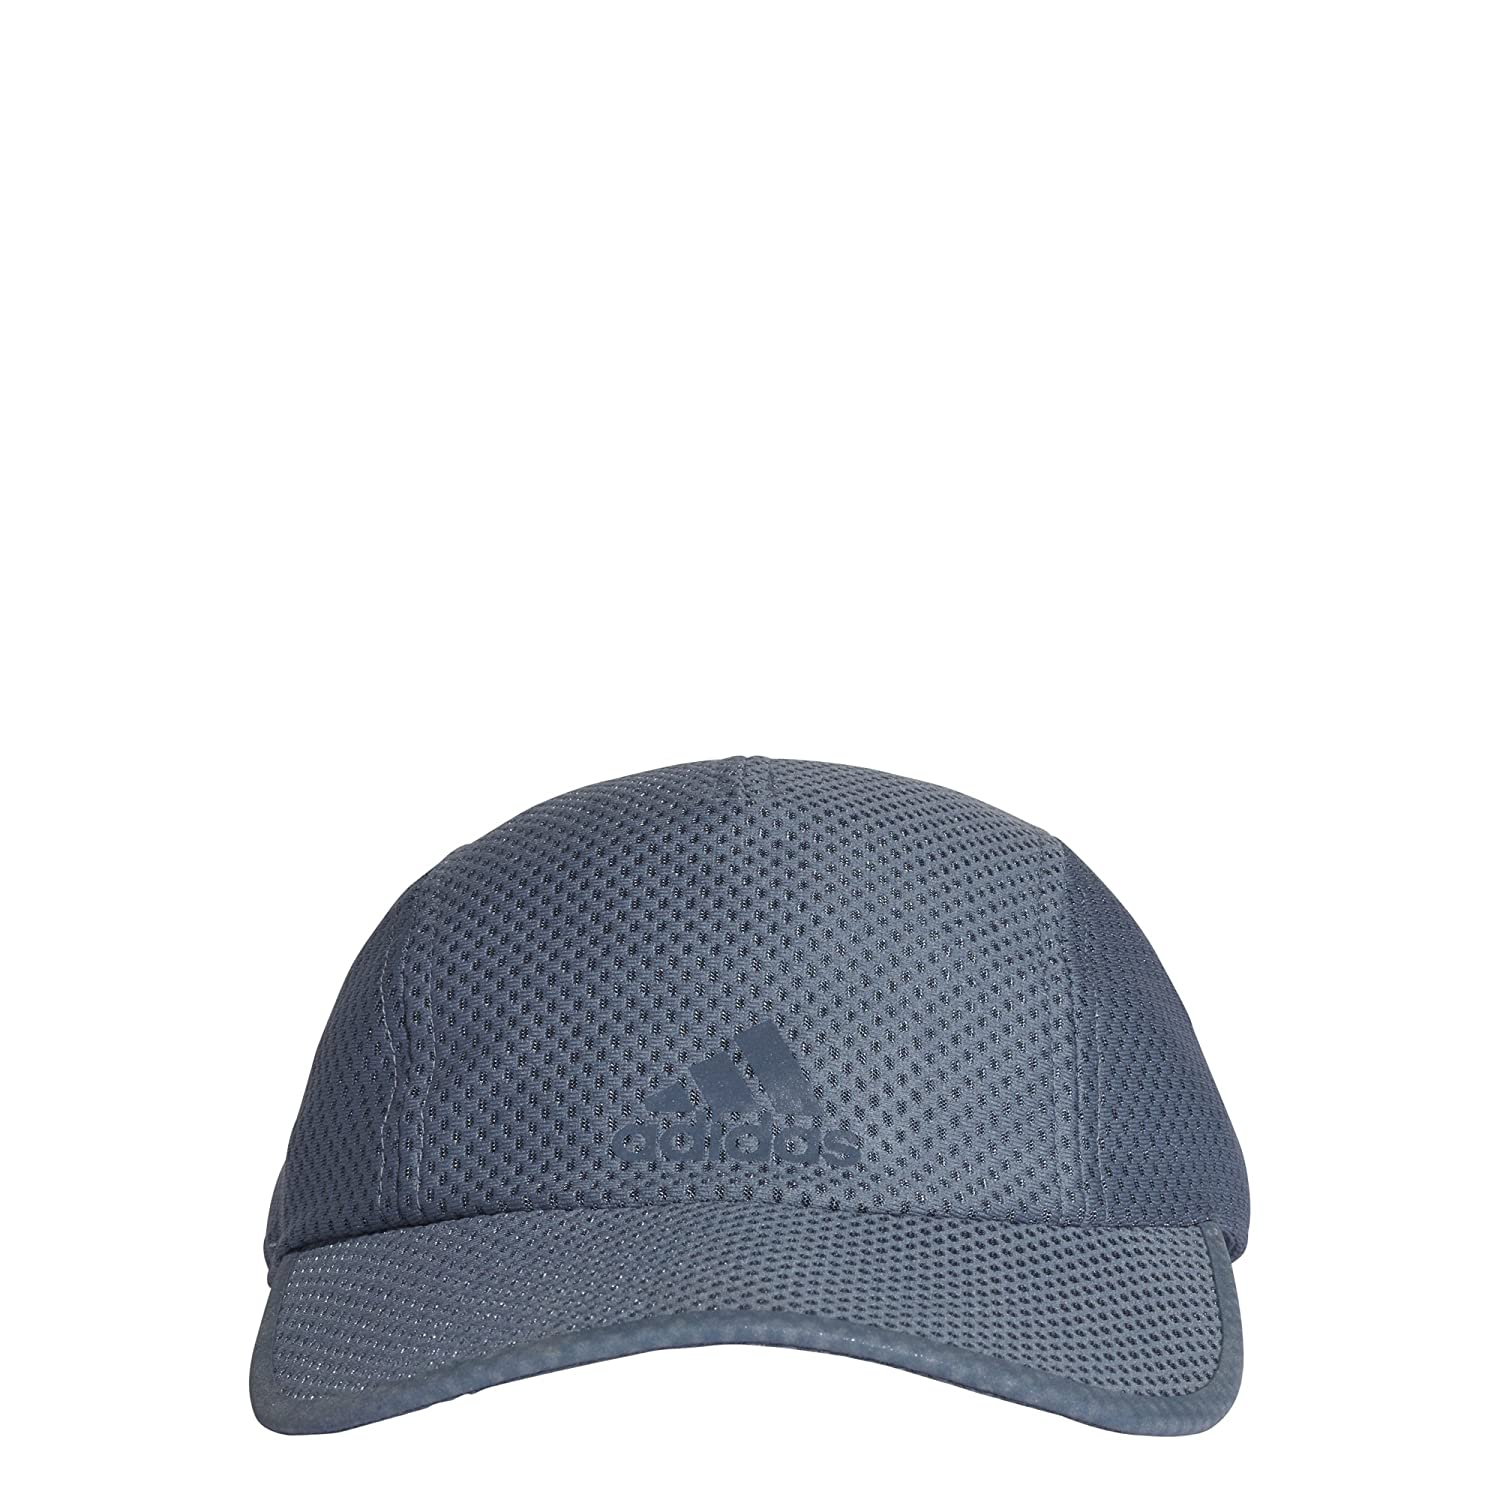 adidas Men's Climacool Running Cap, Men CV5084